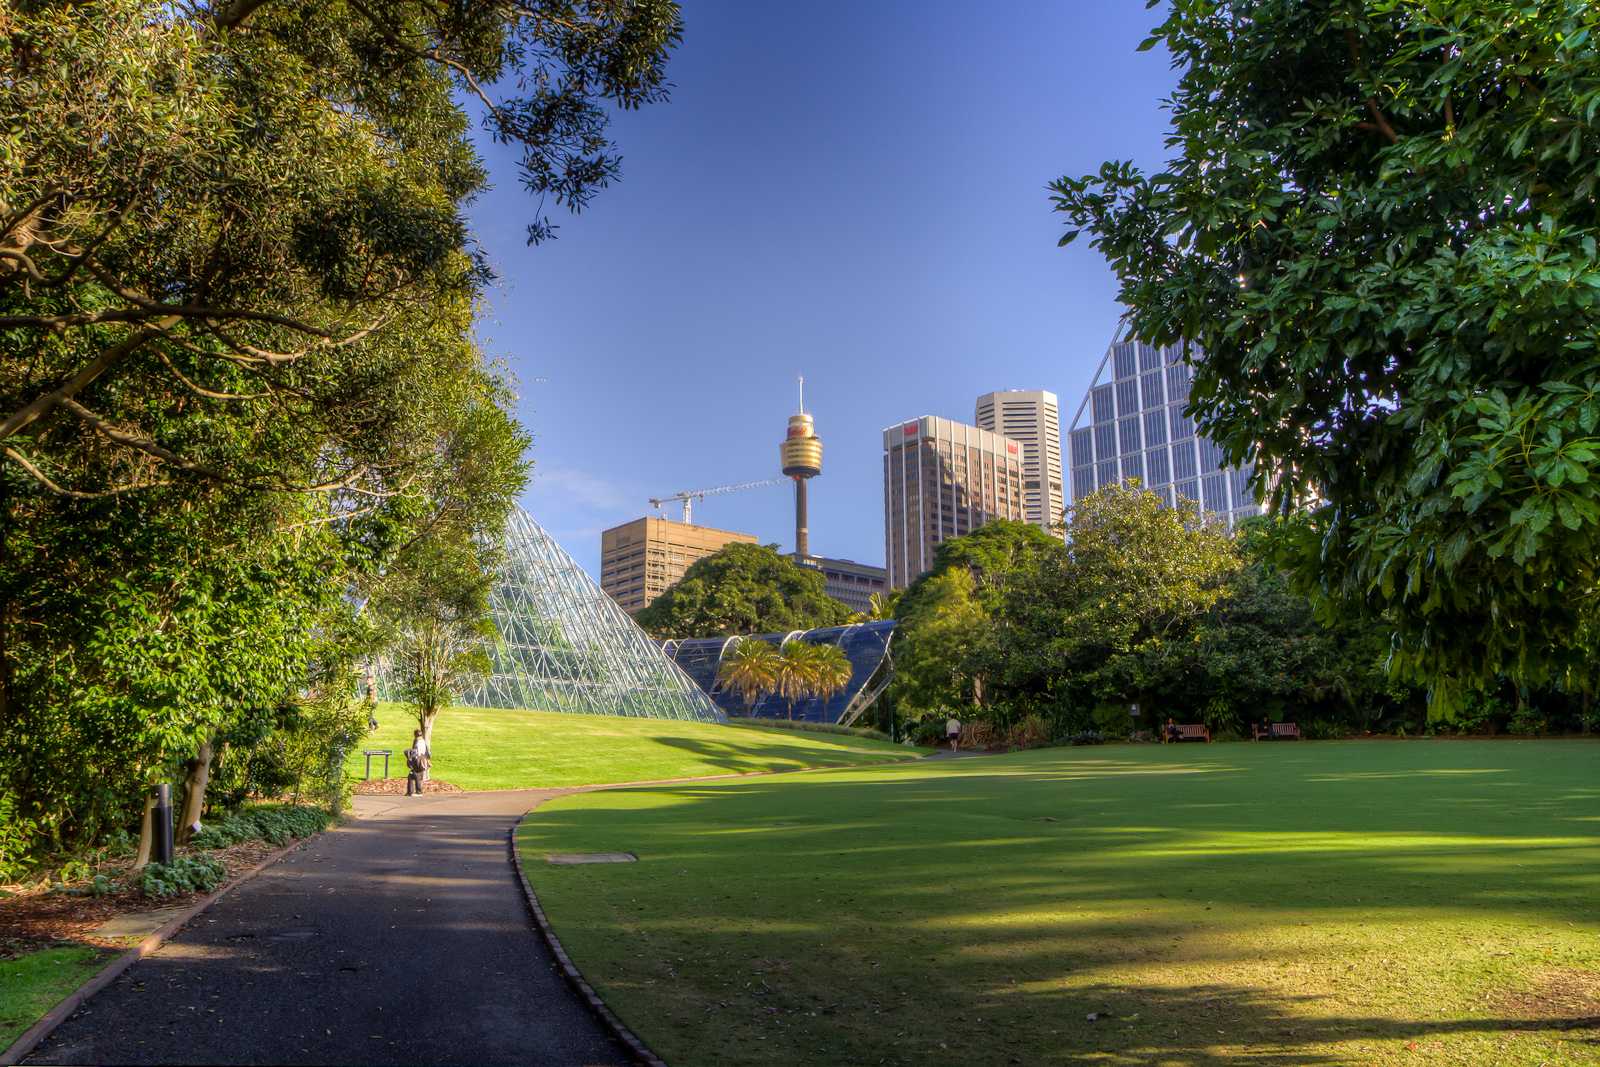 Centrepoint from the Botanic Gardens